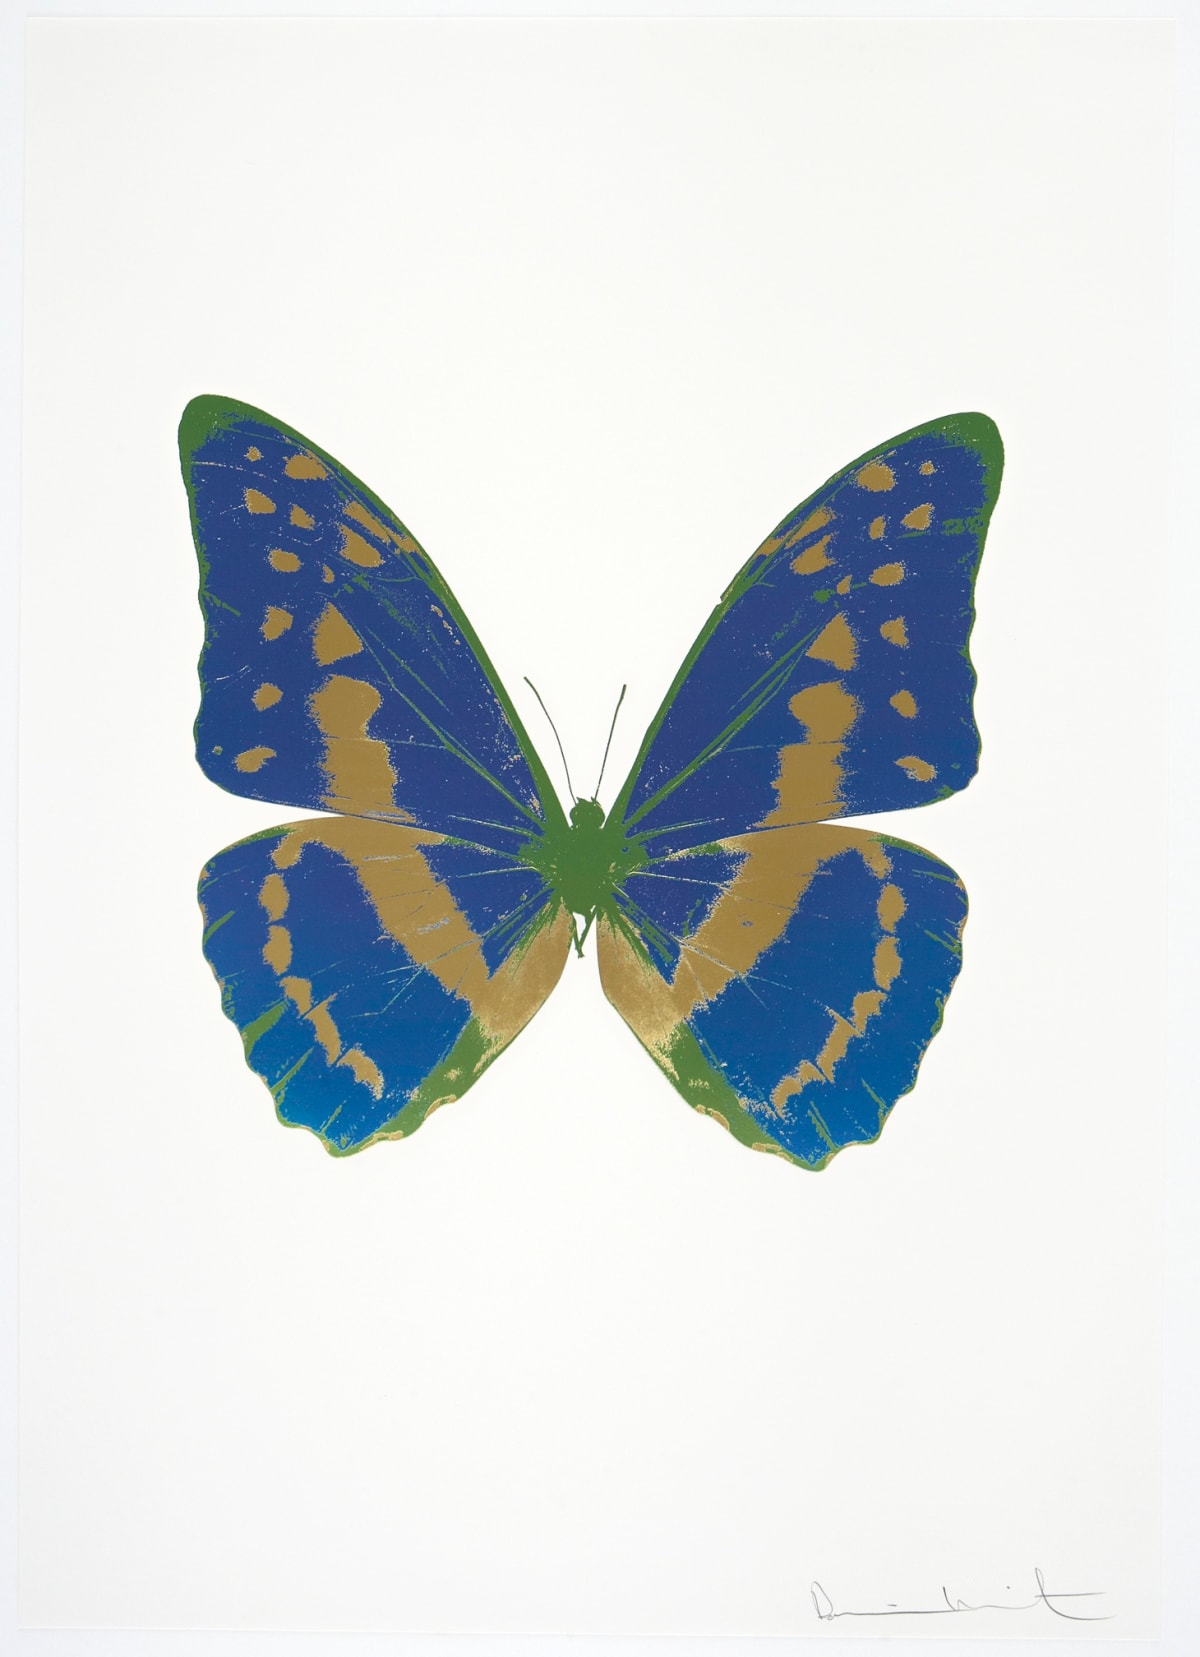 Damien Hirst The Souls III - Frost Blue/Sunset Gold/Leaf Green, 2010 3 colour foil block on 300gsm Arches 88 archival paper. Signed and numbered. Published by Paul Stolper and Other Criteria 72 x 51cm OC7938 / 660-41 Edition of 15